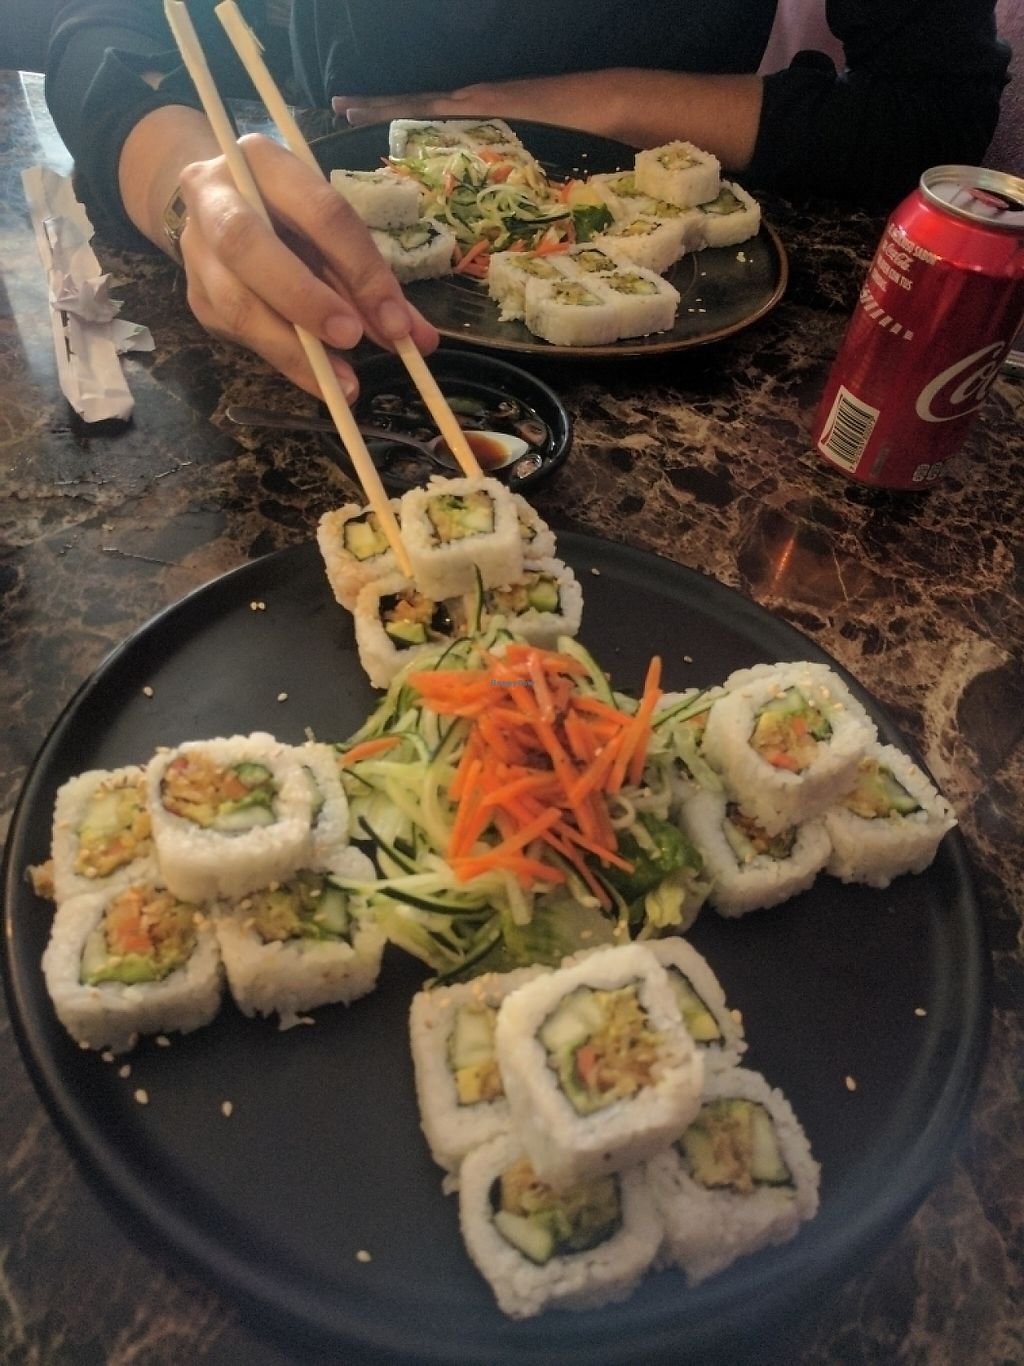 """Photo of Ke Sushi  by <a href=""""/members/profile/ali_cm17"""">ali_cm17</a> <br/>vegetarian sushi roll <br/> May 31, 2017  - <a href='/contact/abuse/image/93135/264408'>Report</a>"""